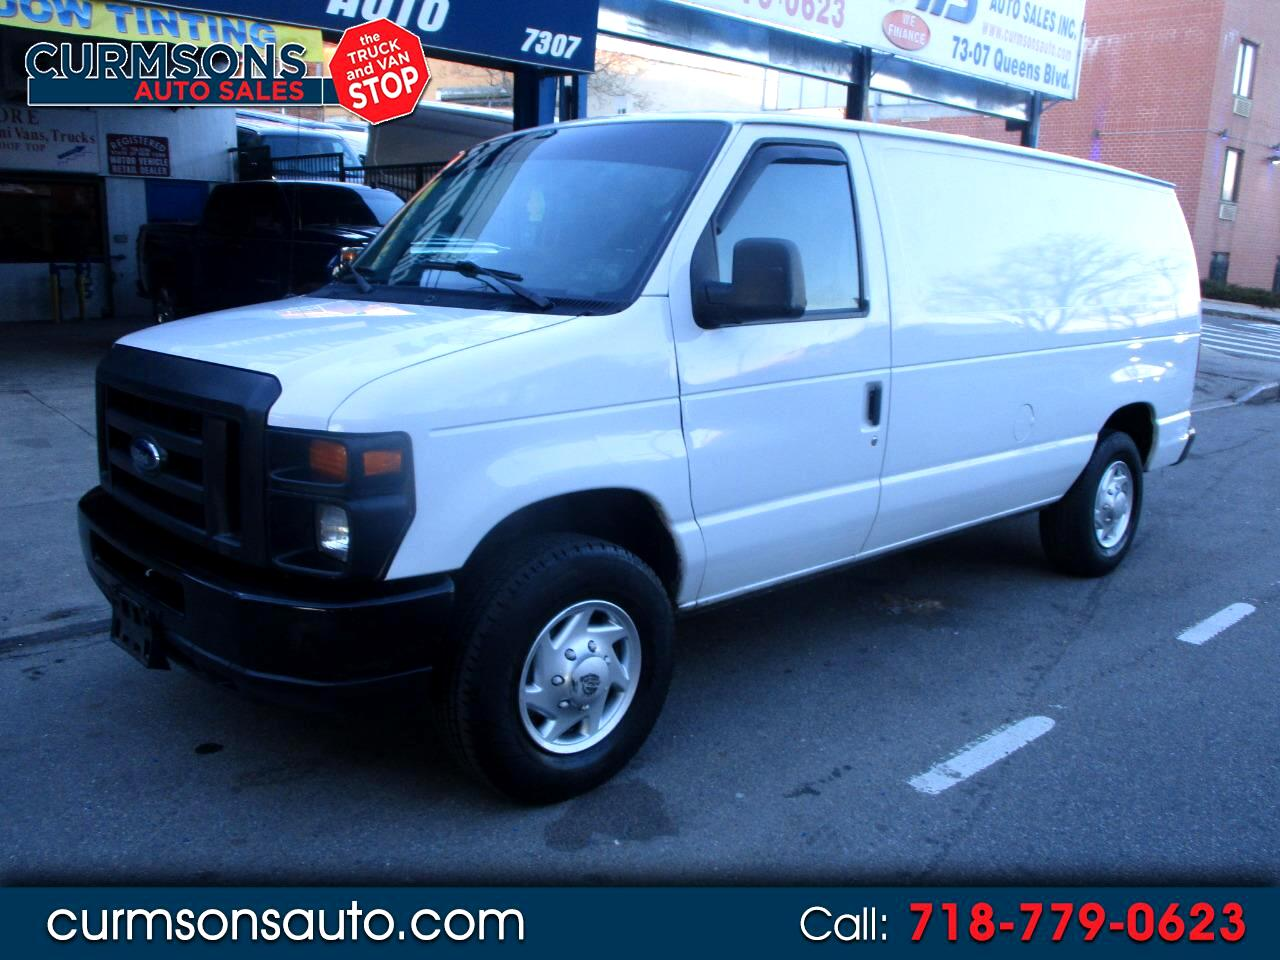 Ford E-Series Van E-250 2014